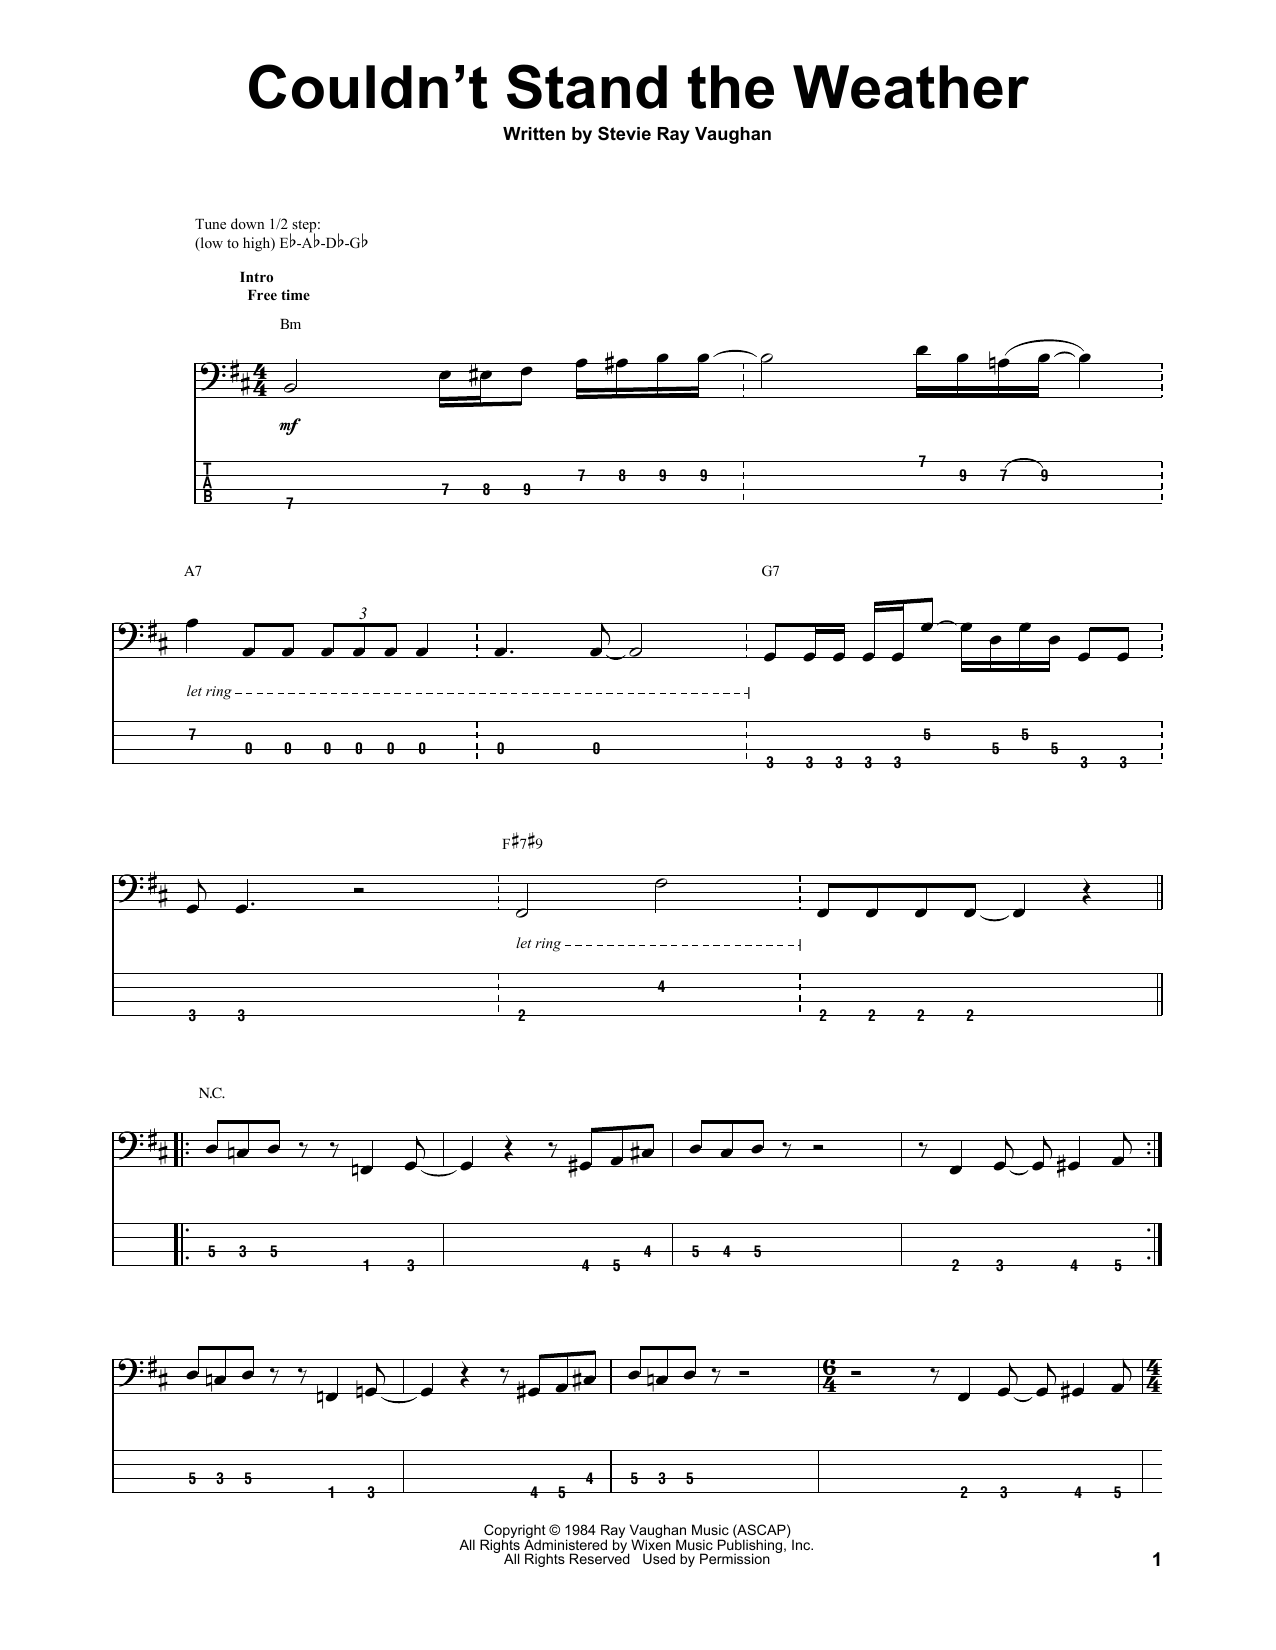 Tablature guitare Couldn't Stand The Weather de Stevie Ray Vaughan - Tablature Basse